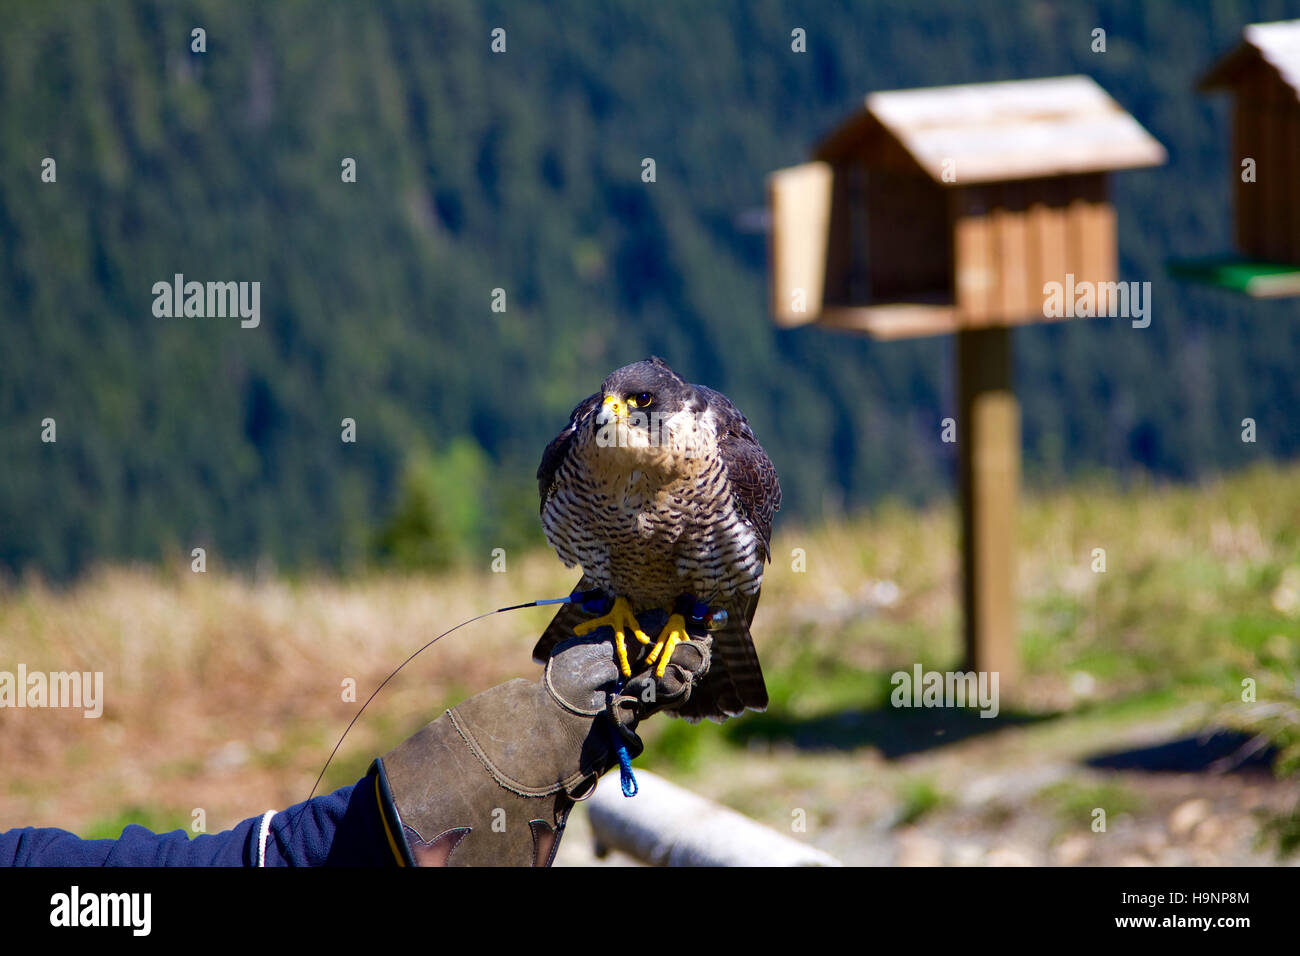 A falcon sitting on a handler's hand at the Grouse Mountain in Vancouver, Canada. A bird house is in the background. - Stock Image